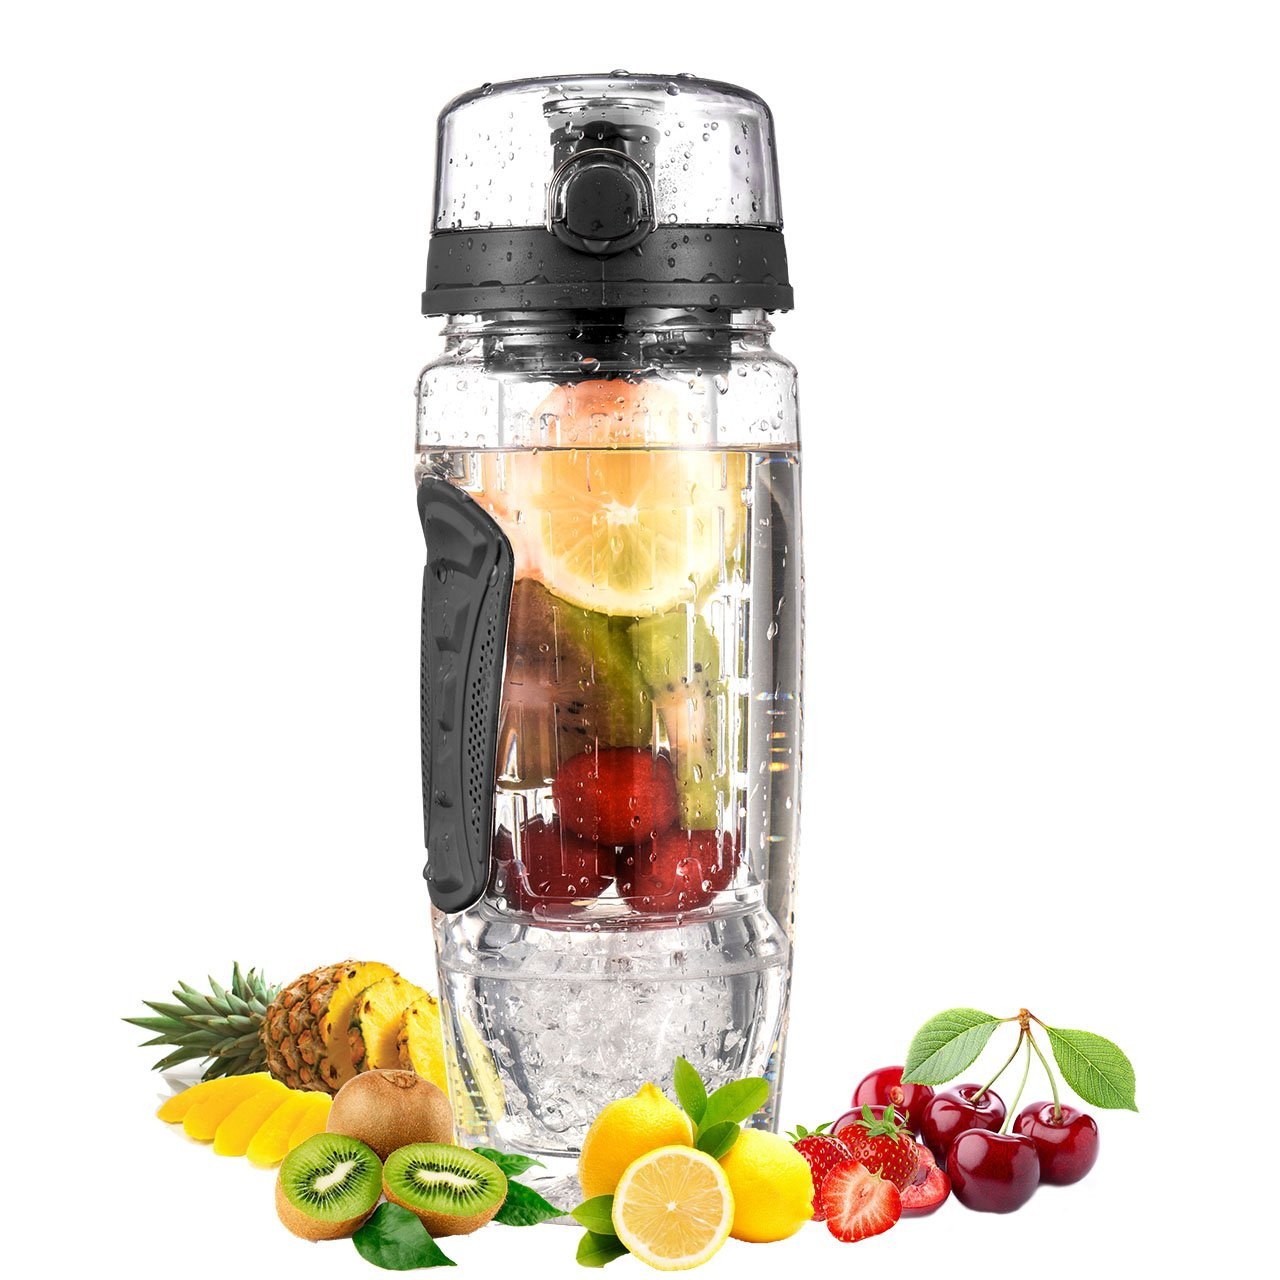 OMORC Fruit Infuser Water Bottle, 32OZ BPA-free Tritan Sport Bottle with Gel Freezer Ball, Removable Infusion Rod, Leakproof Flip Top Lid, Fruit Recipes and Cleaning Brush for Sports, Camping and Home